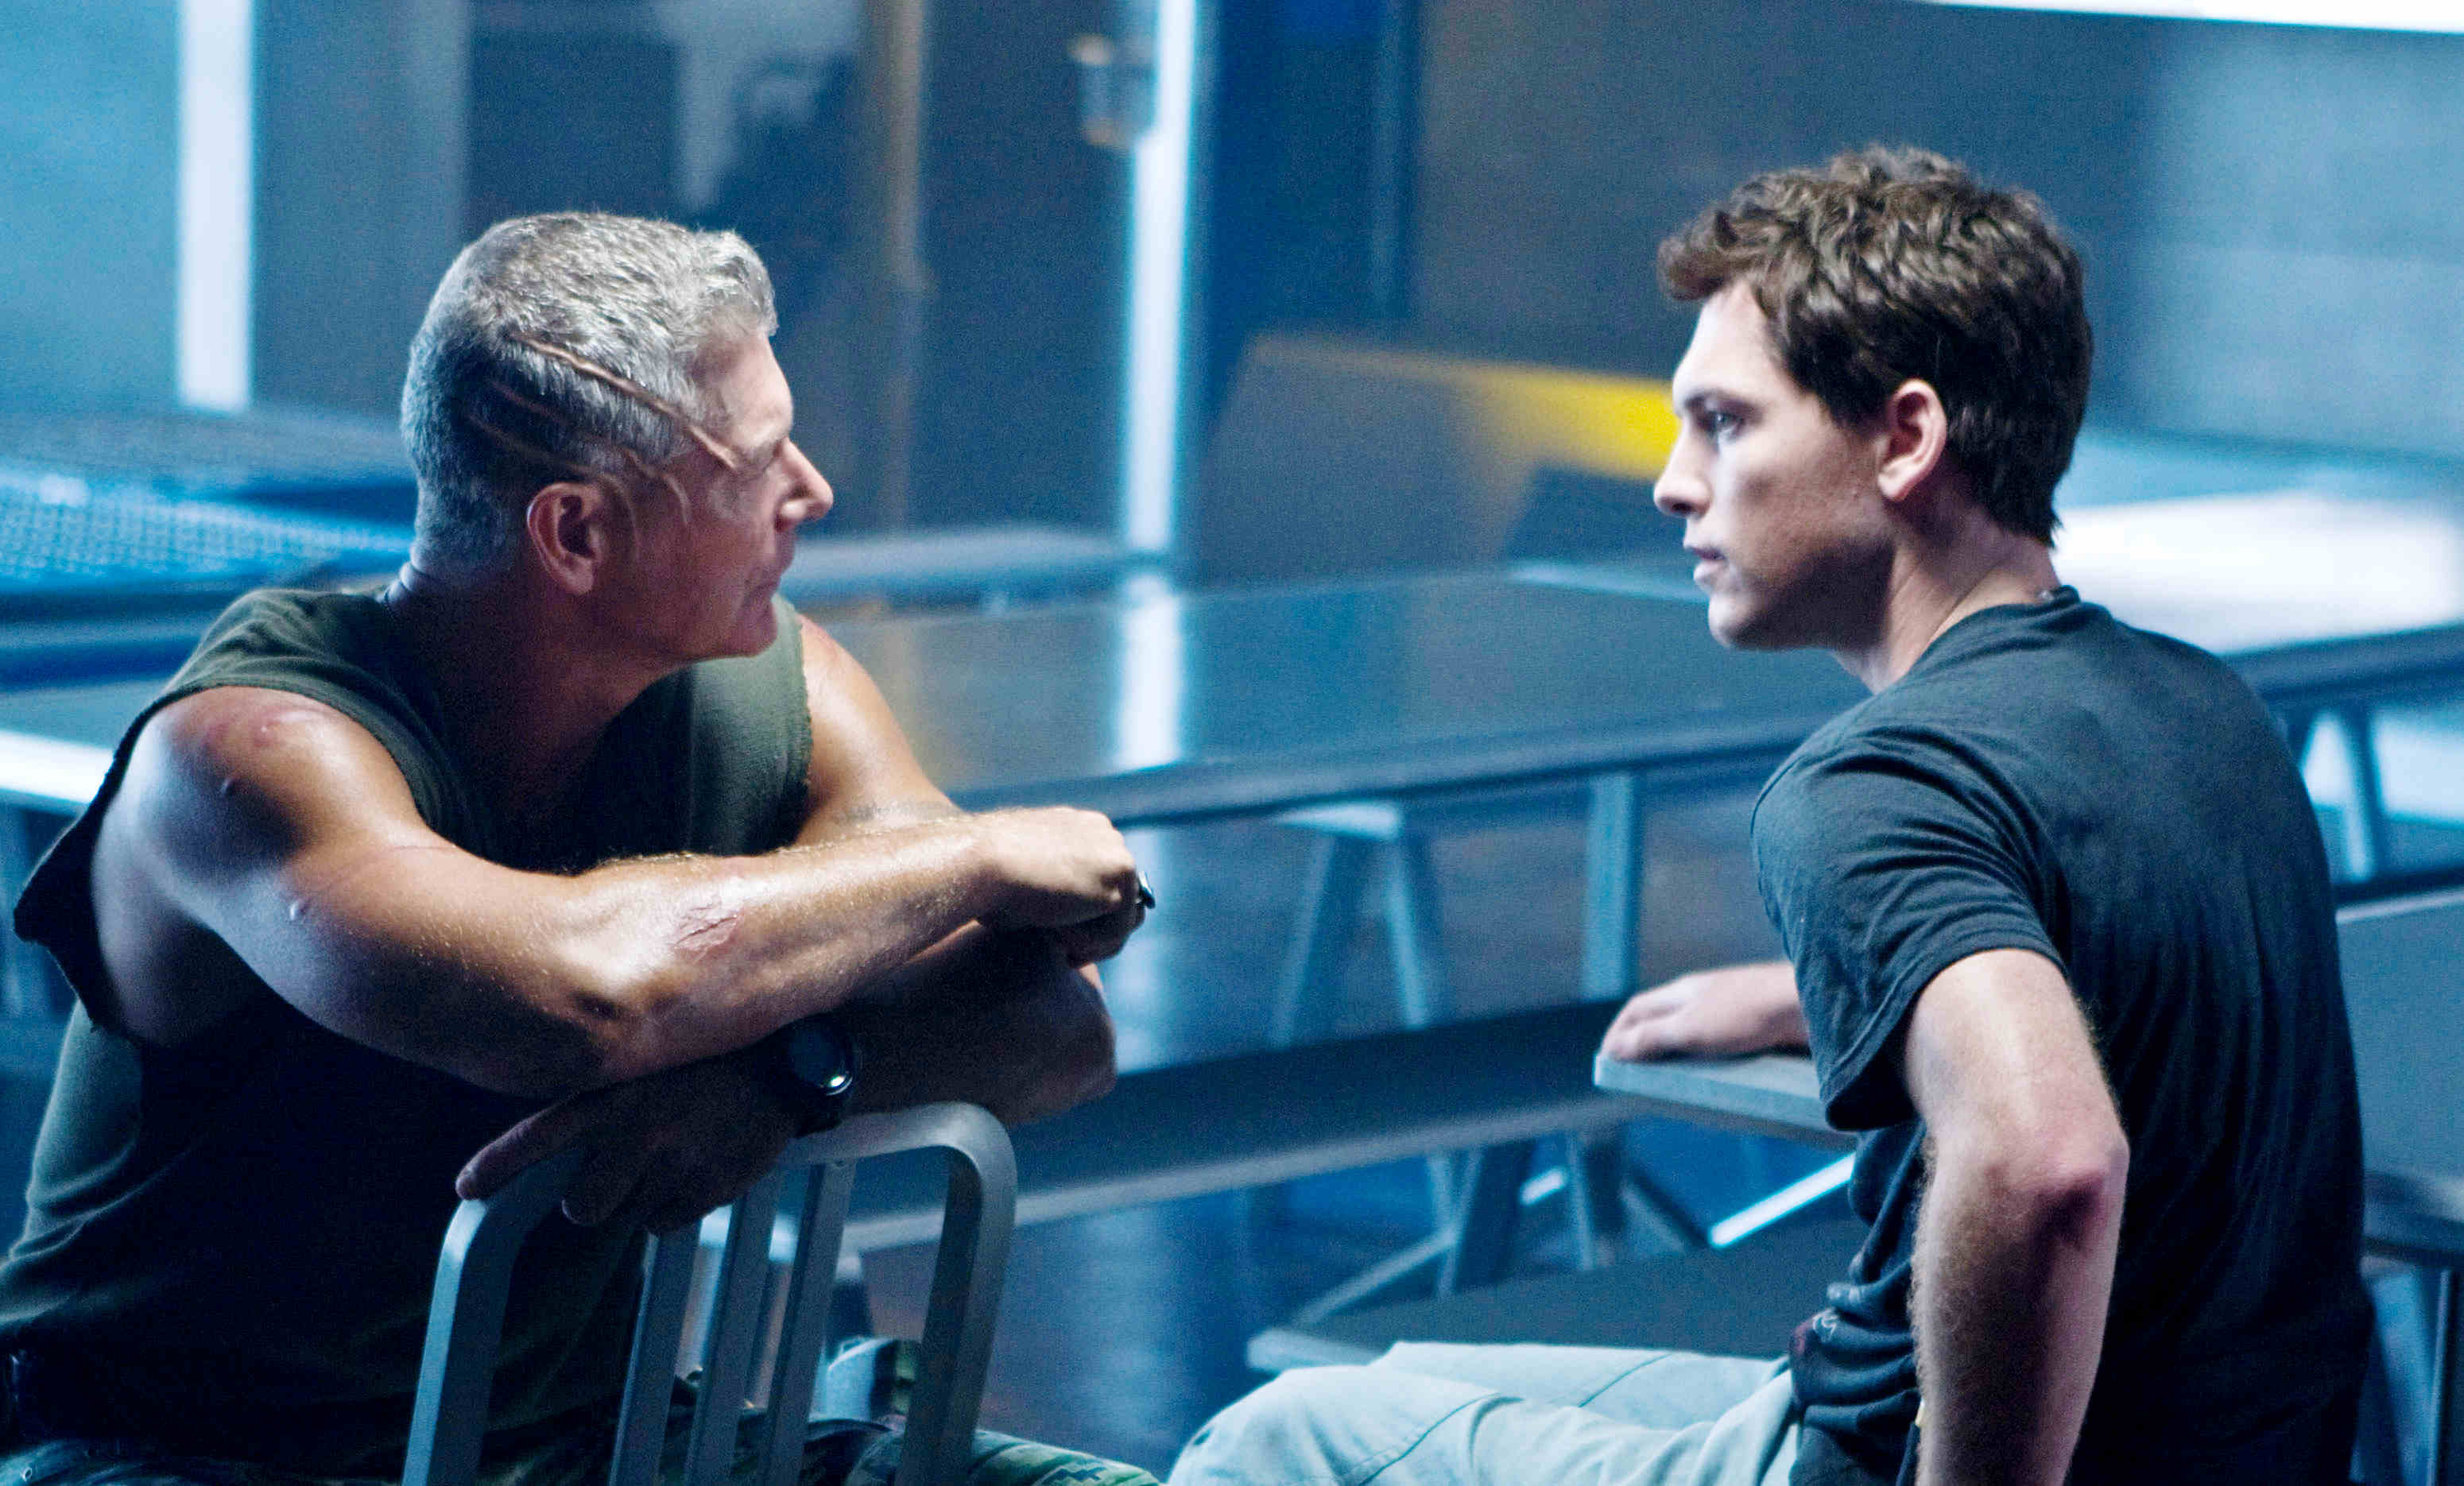 Stephen Lang stars as Col. Quaritch and Sam Worthington stars as Jake Sully in The 20th Century Fox's Avatar (2009)